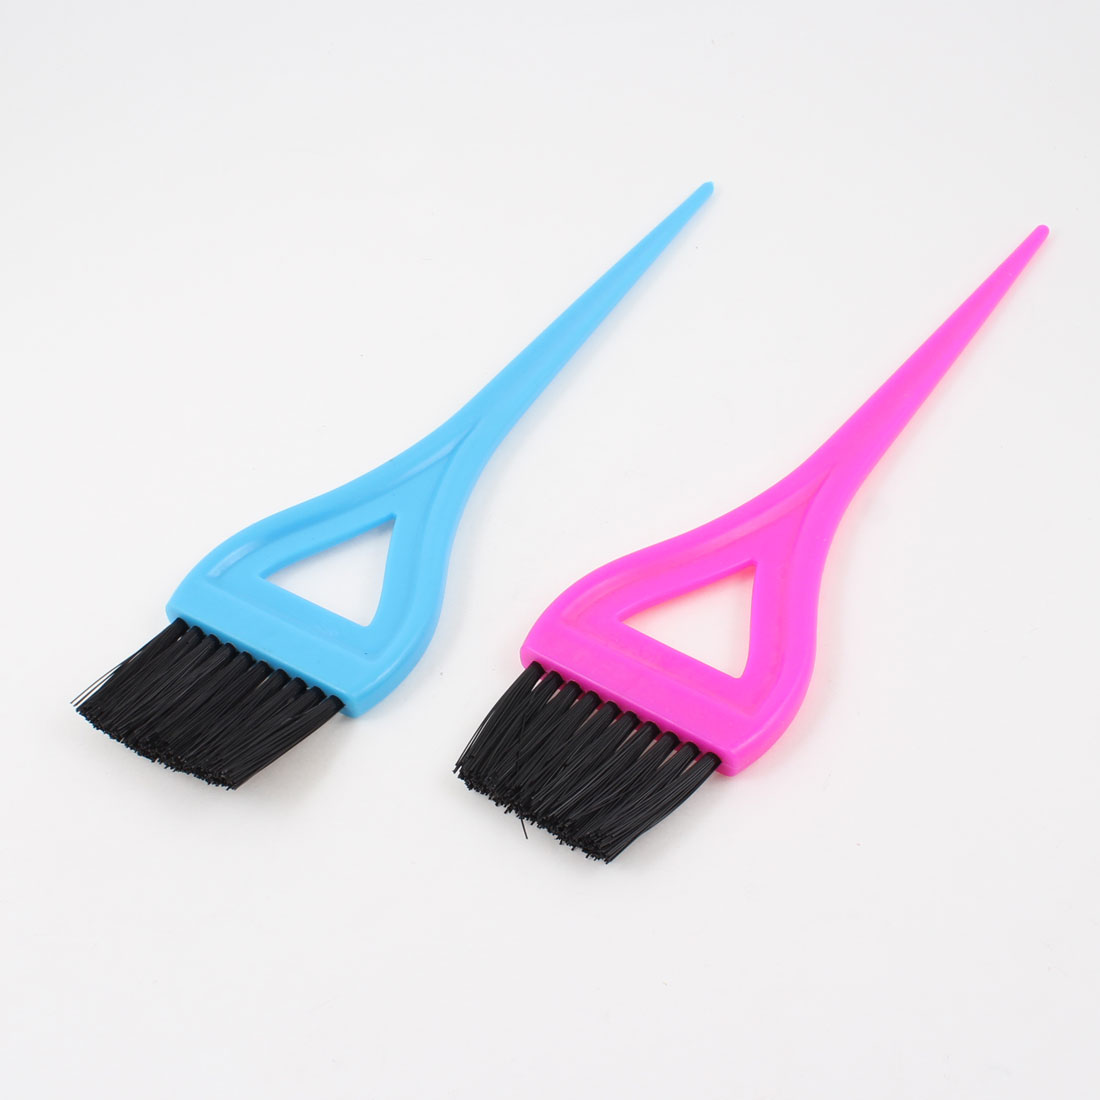 2pcs Plastic Bristle Hair Dye Color Salon Brush Hairdressing Tool Fushcia Blue